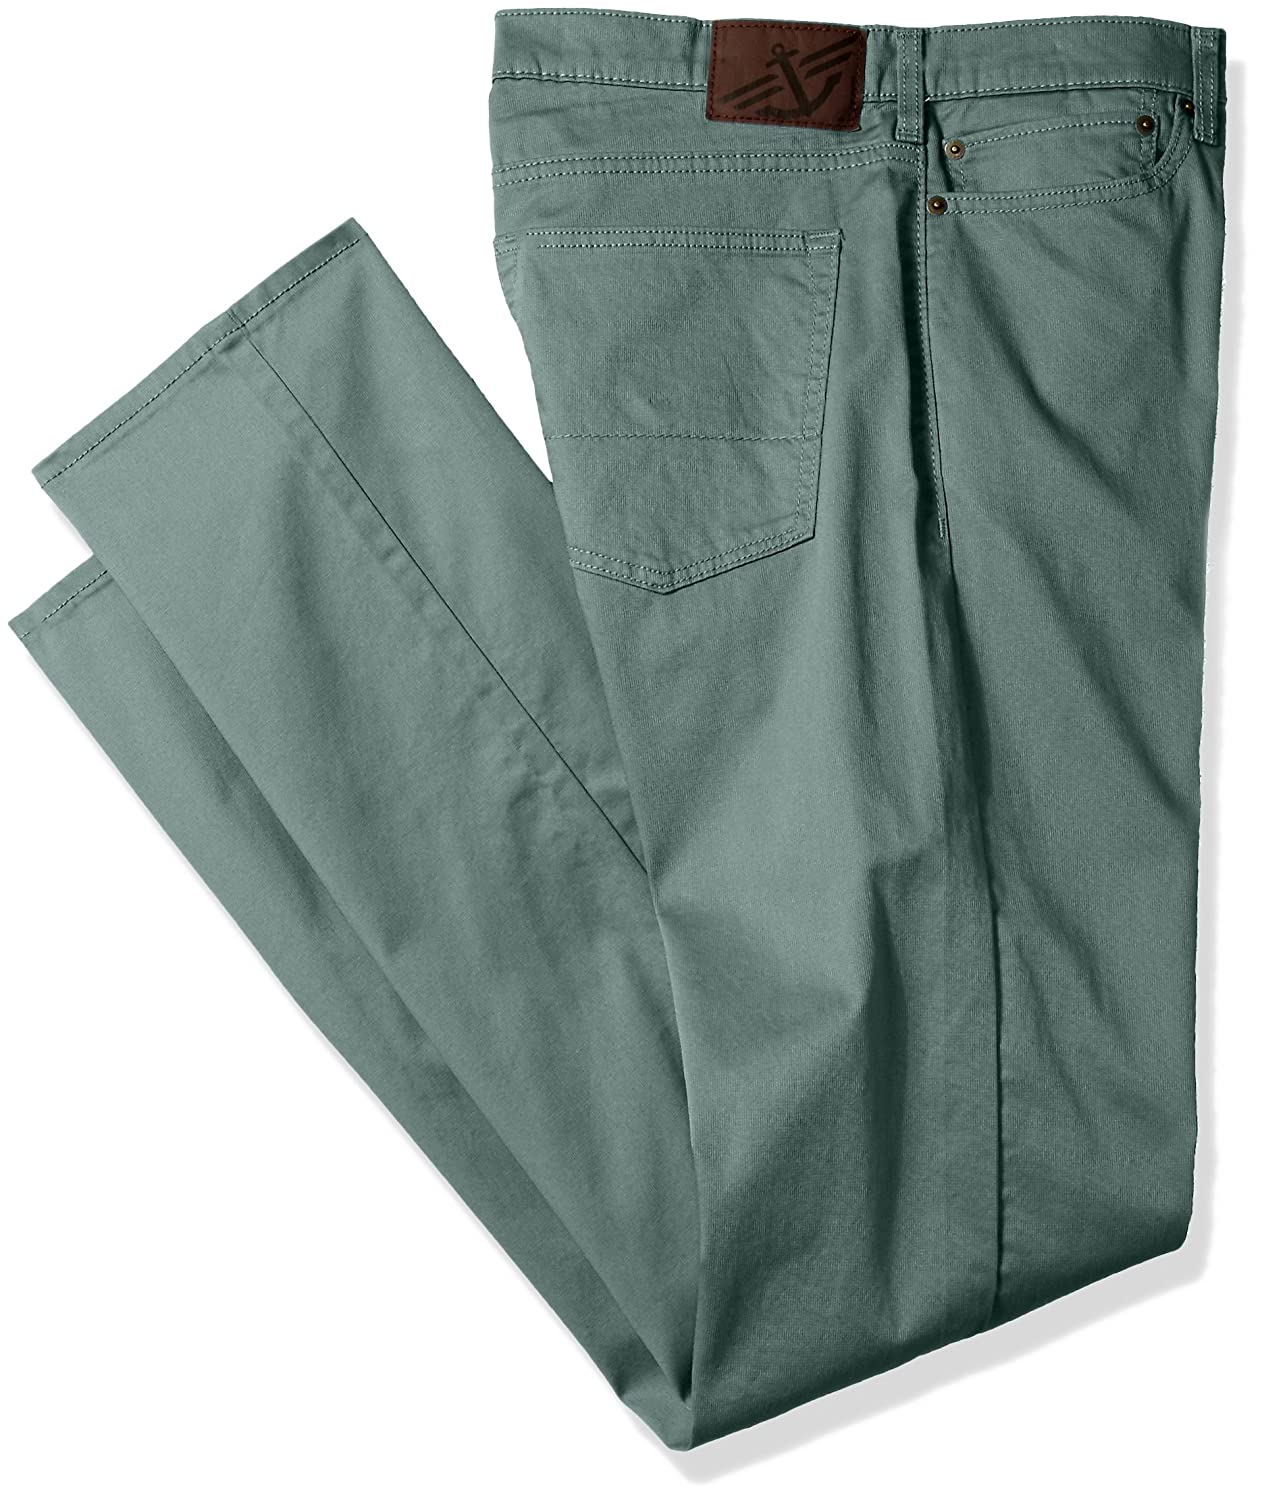 Dockers Men's Big & Tall Classic Fit Jean Cut Khaki Pants D3